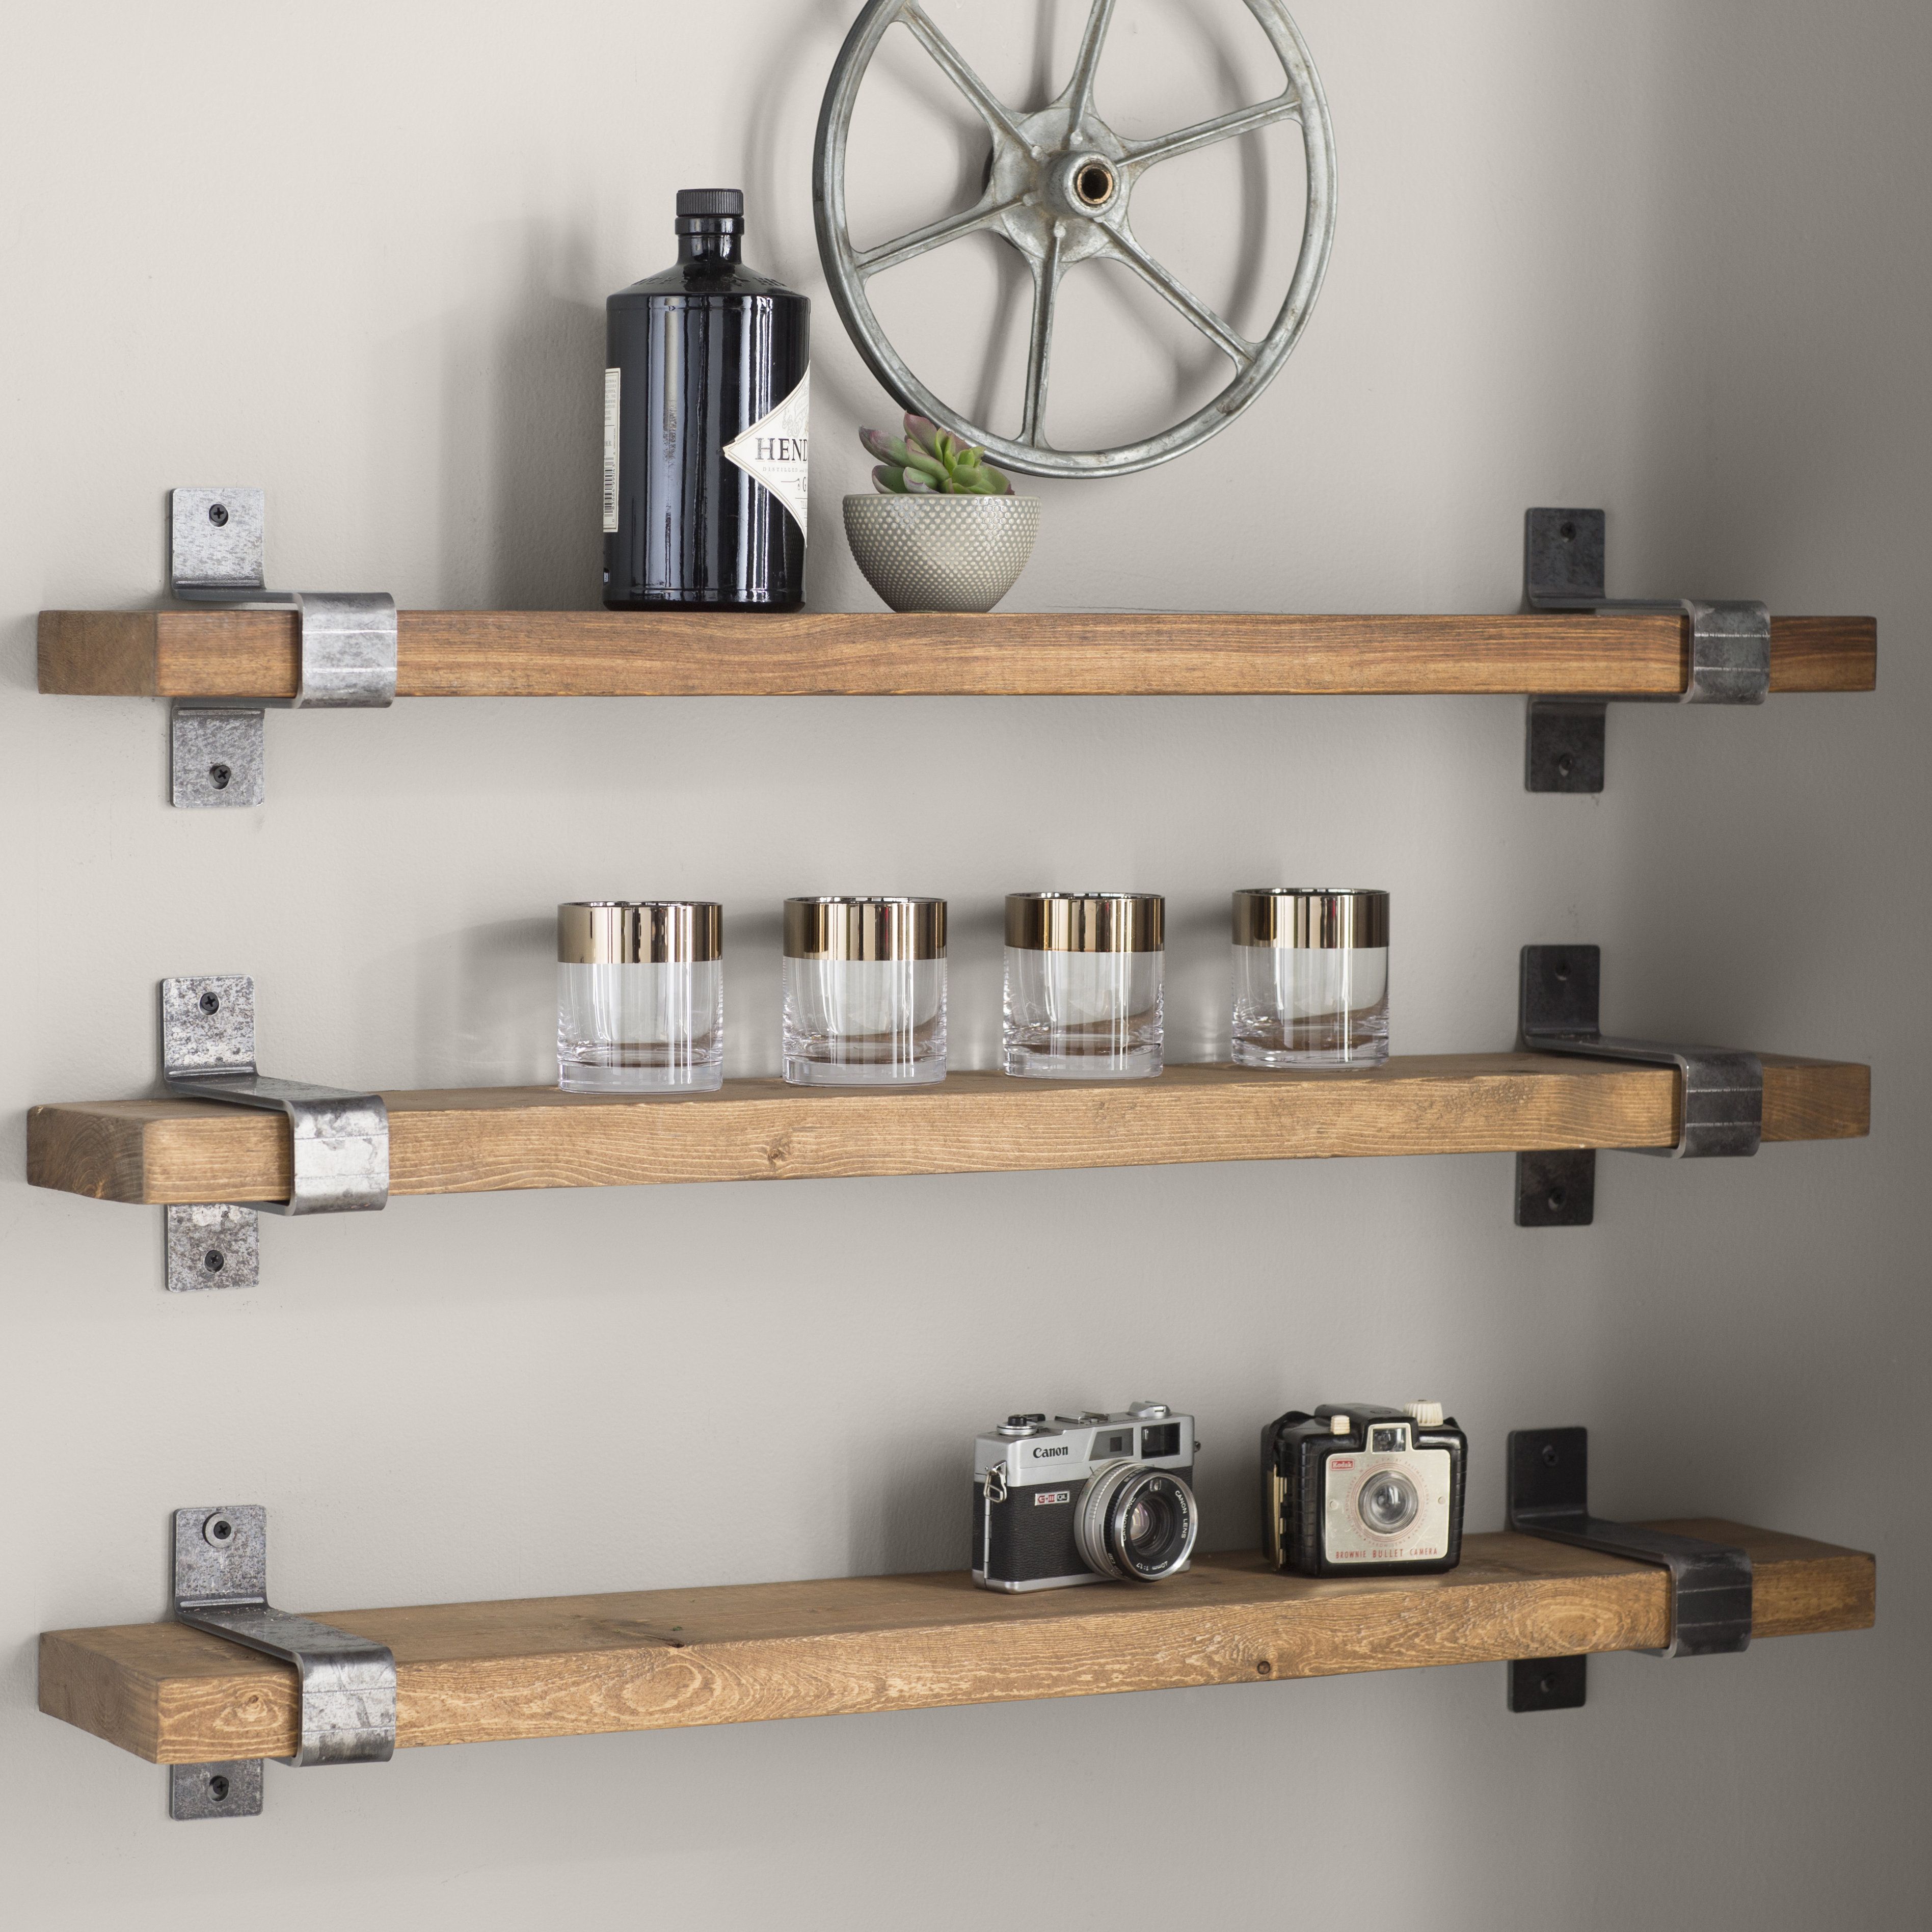 Pin By Steve Childers On Walls In 2020 Industrial Wall Shelves